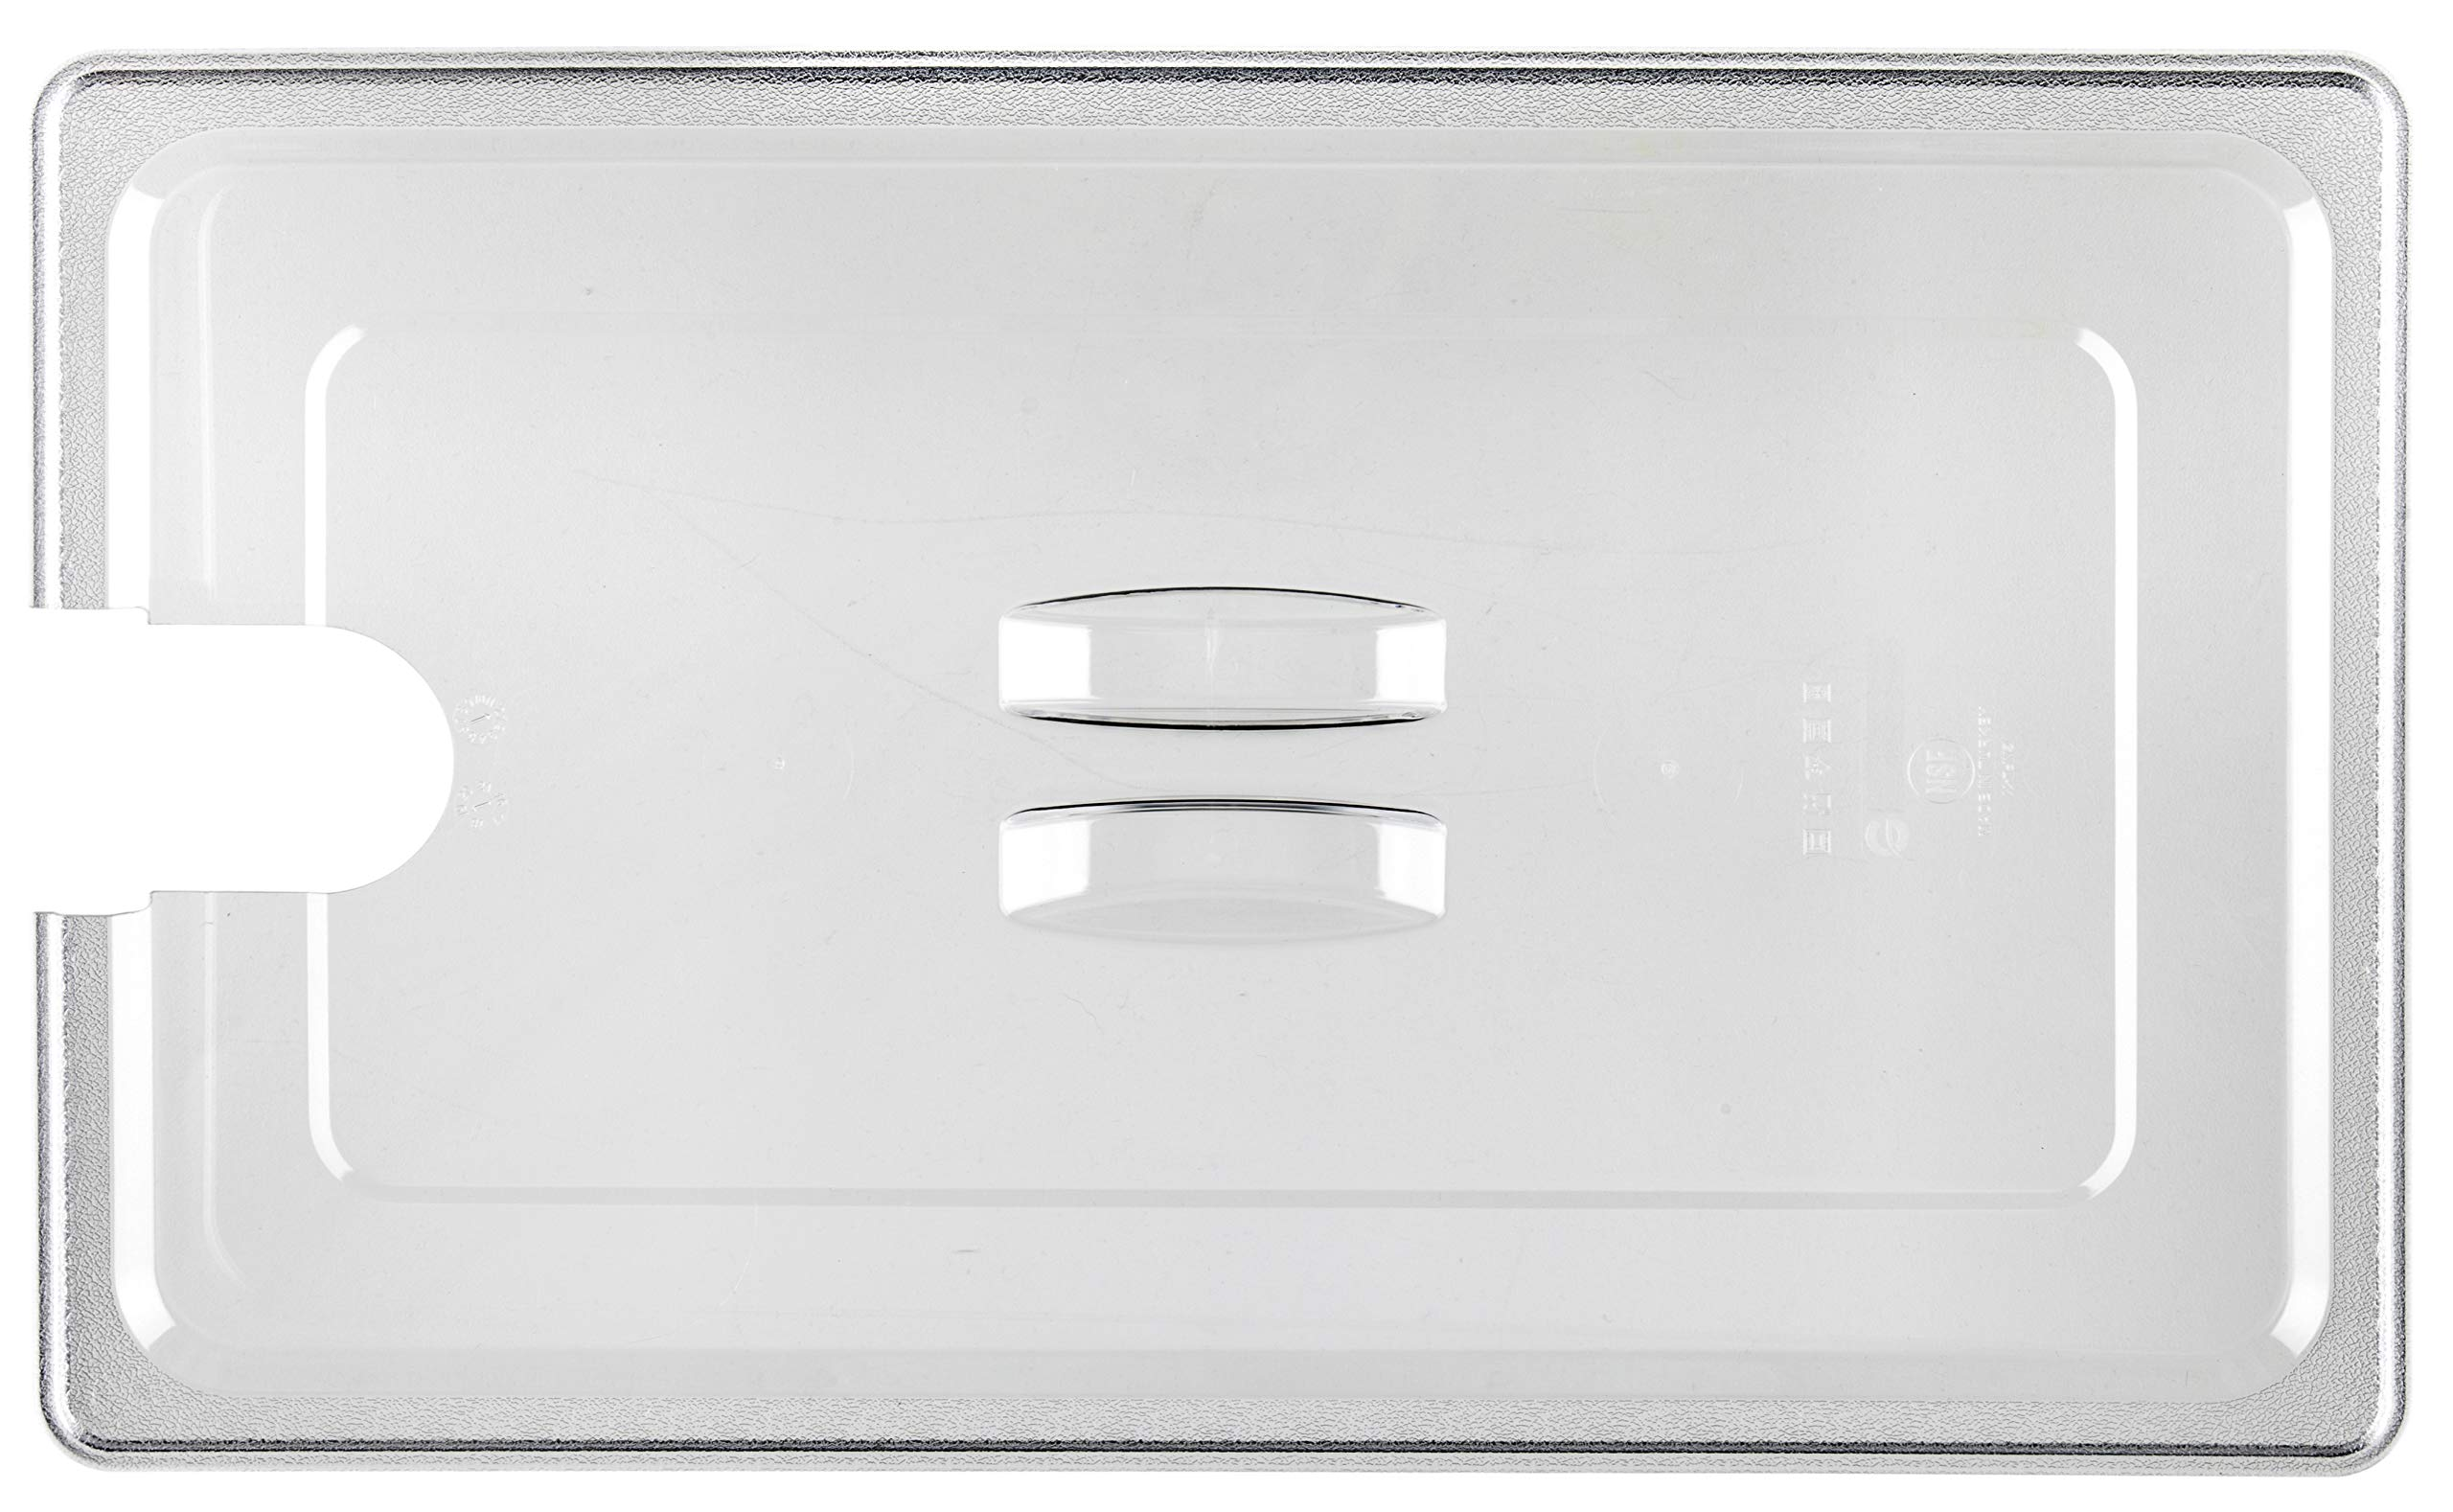 Wellborn Sous Vide Container Lid (WHL-26) for WHC-26 also fits to Lipavi C20, Strong & Durable Lid for Anova Culinary Precision Cooker & Anova Pro & Anova Nano, Polycarbonate Clear, NSF Approved (Lid Only) by Wellborn